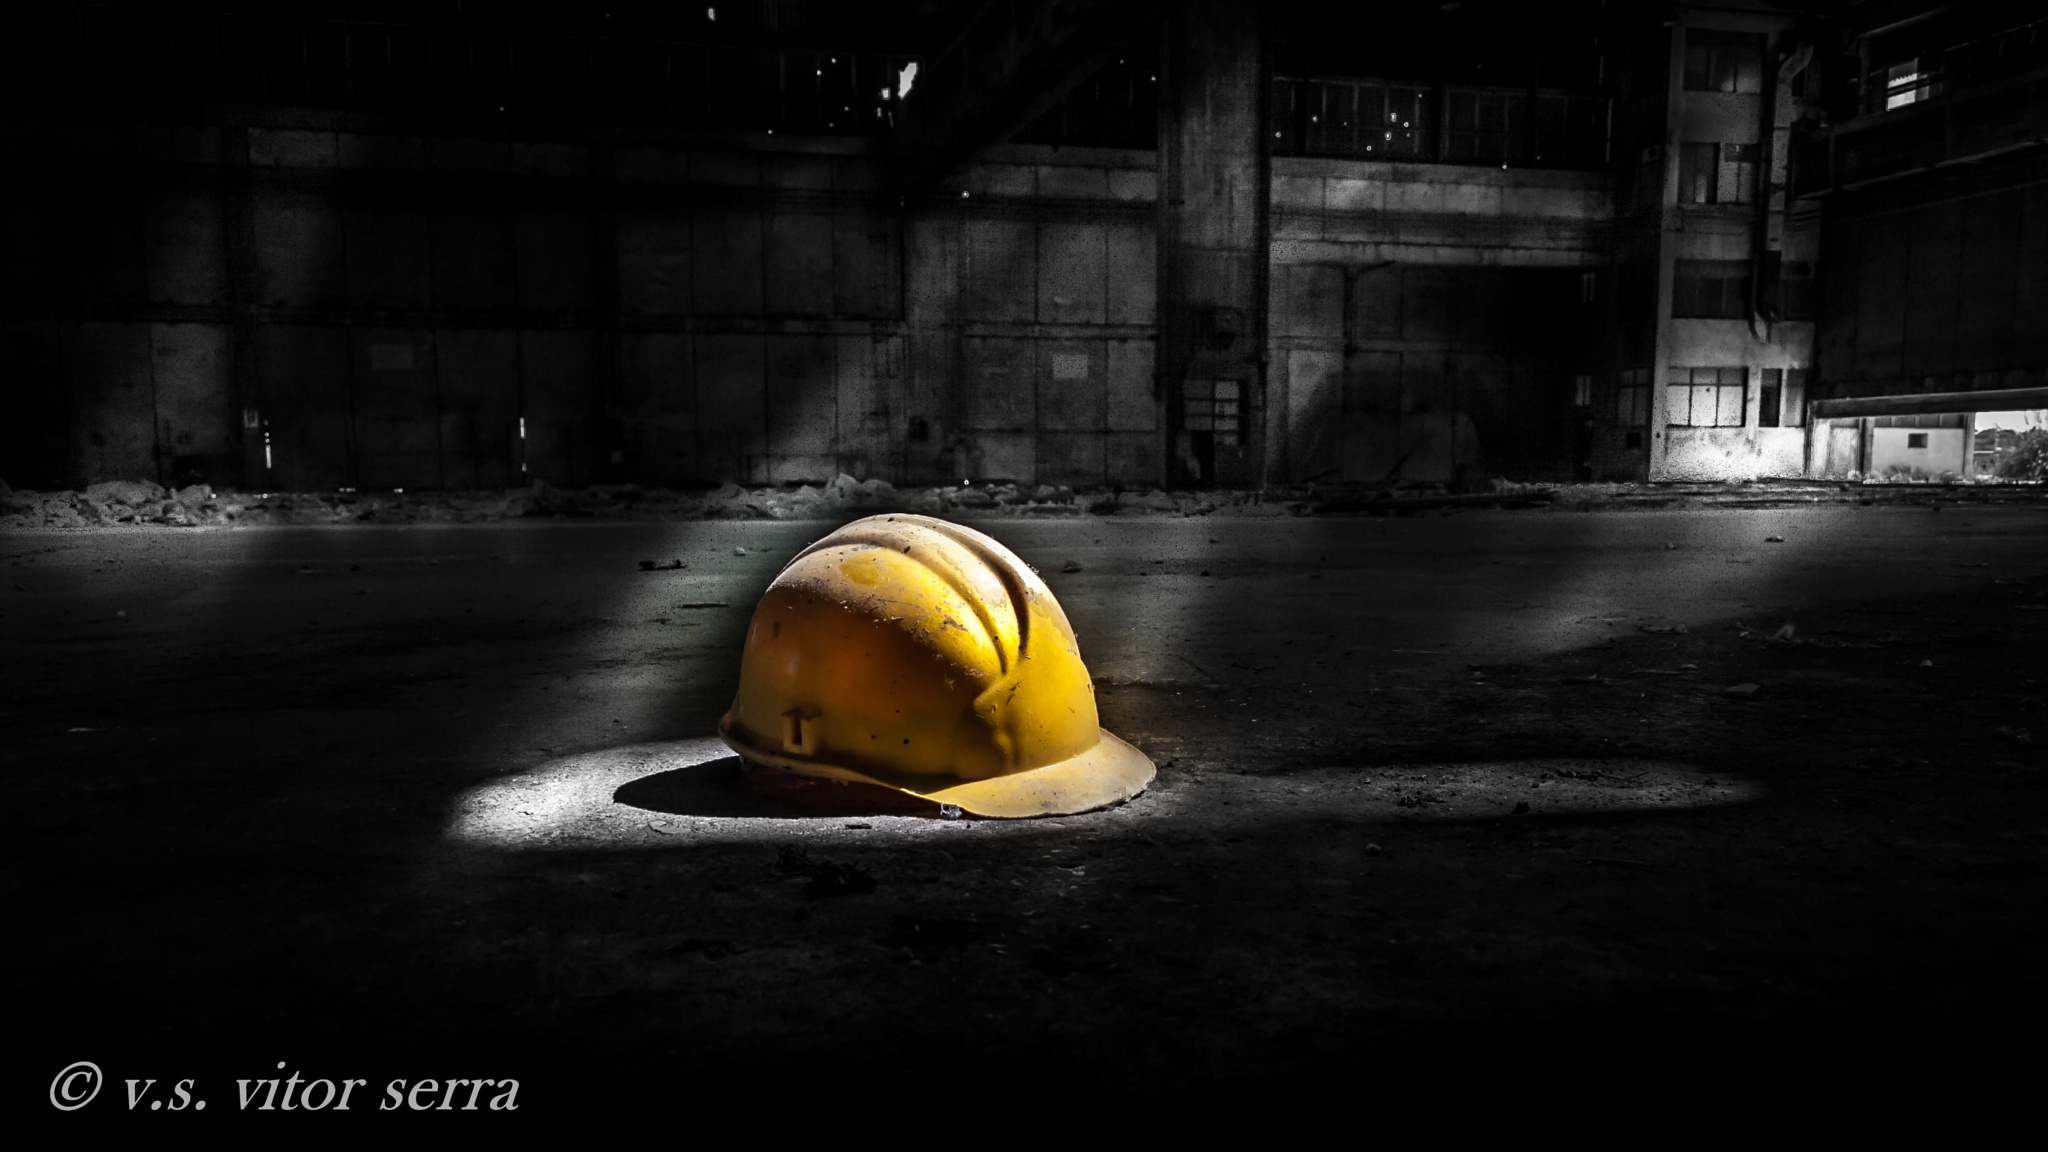 End of the work by vitorserra1